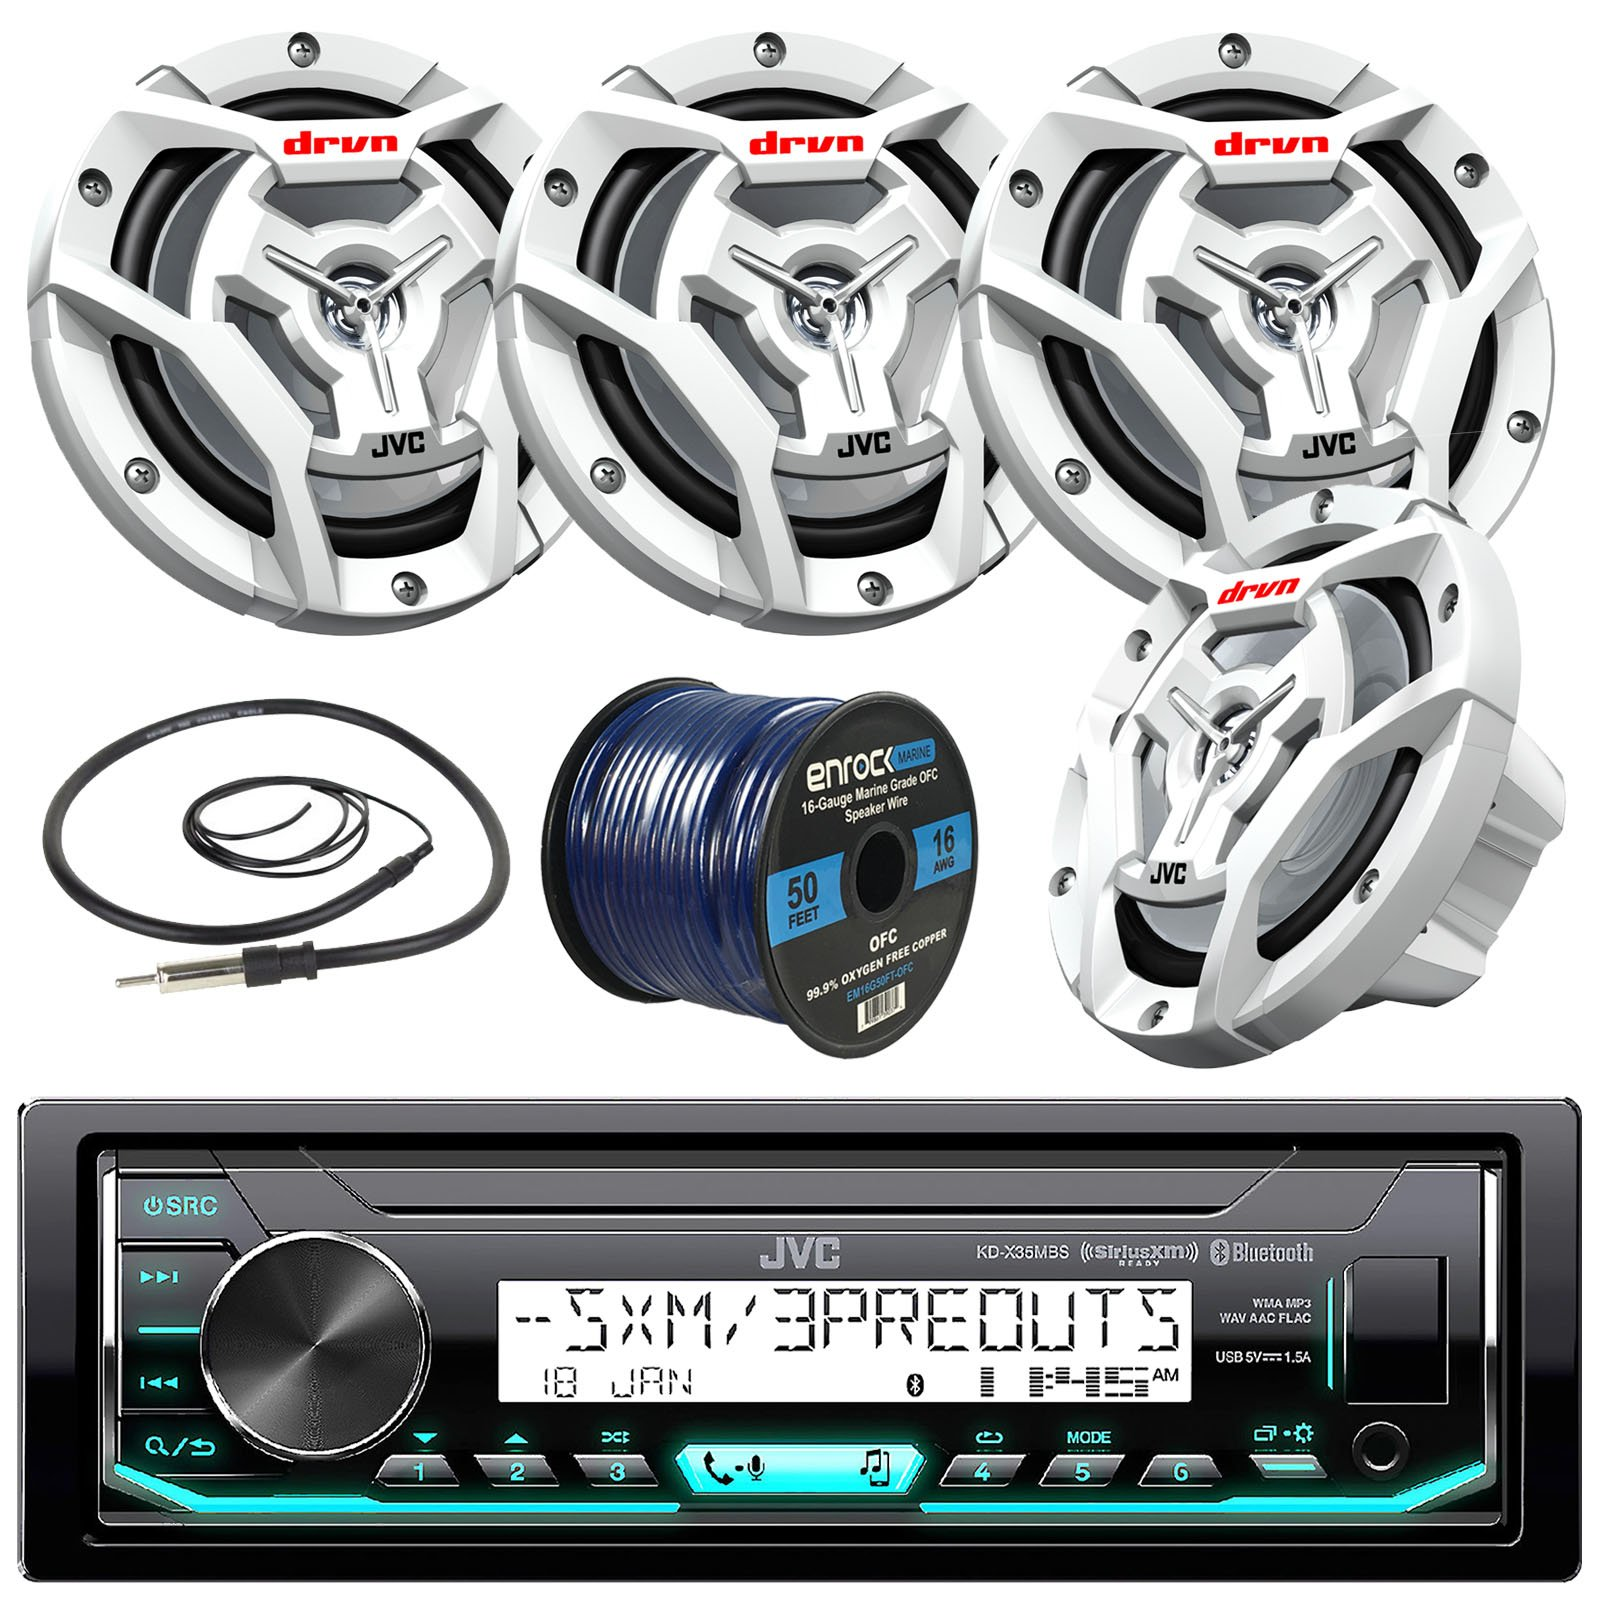 JVC Marine Boat Yacht Radio Stereo Player Receiver Bundle Combo with 4x JVC CS-DR6201MW 300-Watt 6.5'' 2-Way Coaxial Speakers, Enrock Radio Antenna, 50 ft 16g Speaker Wire (White) by JVCMarineBundle